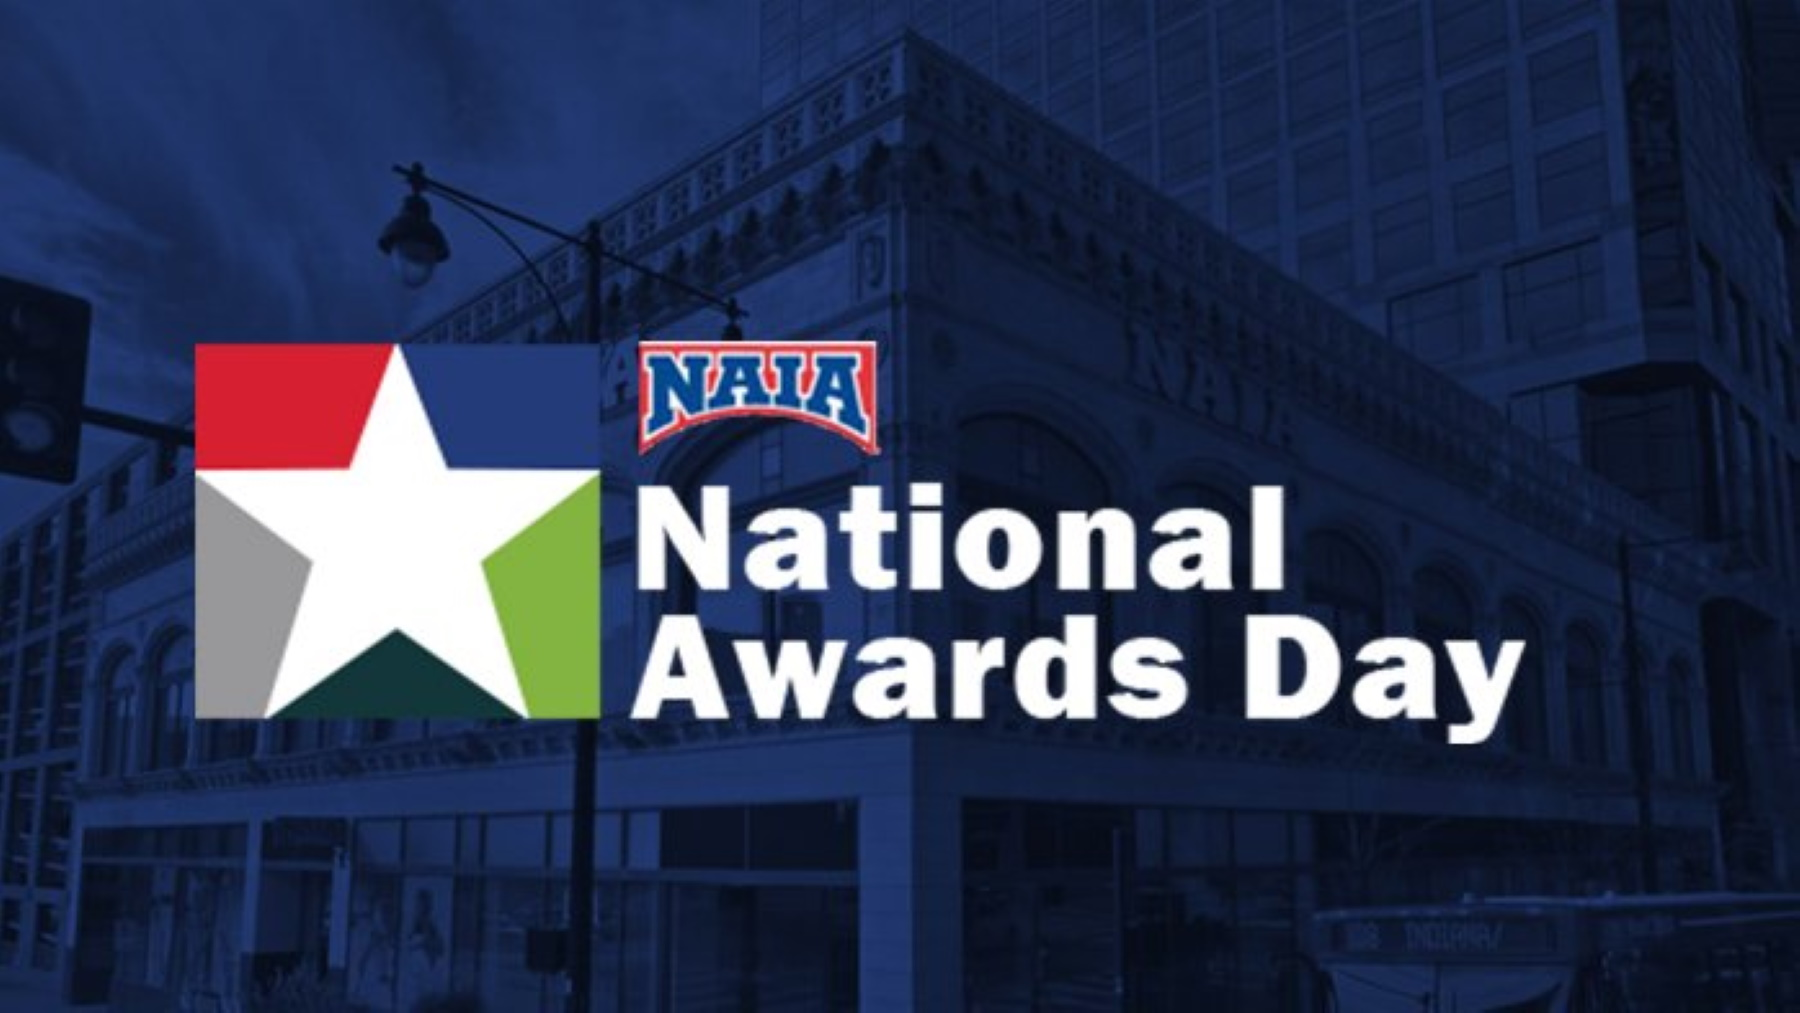 NAIA Releases 2019-20 Academic Honors